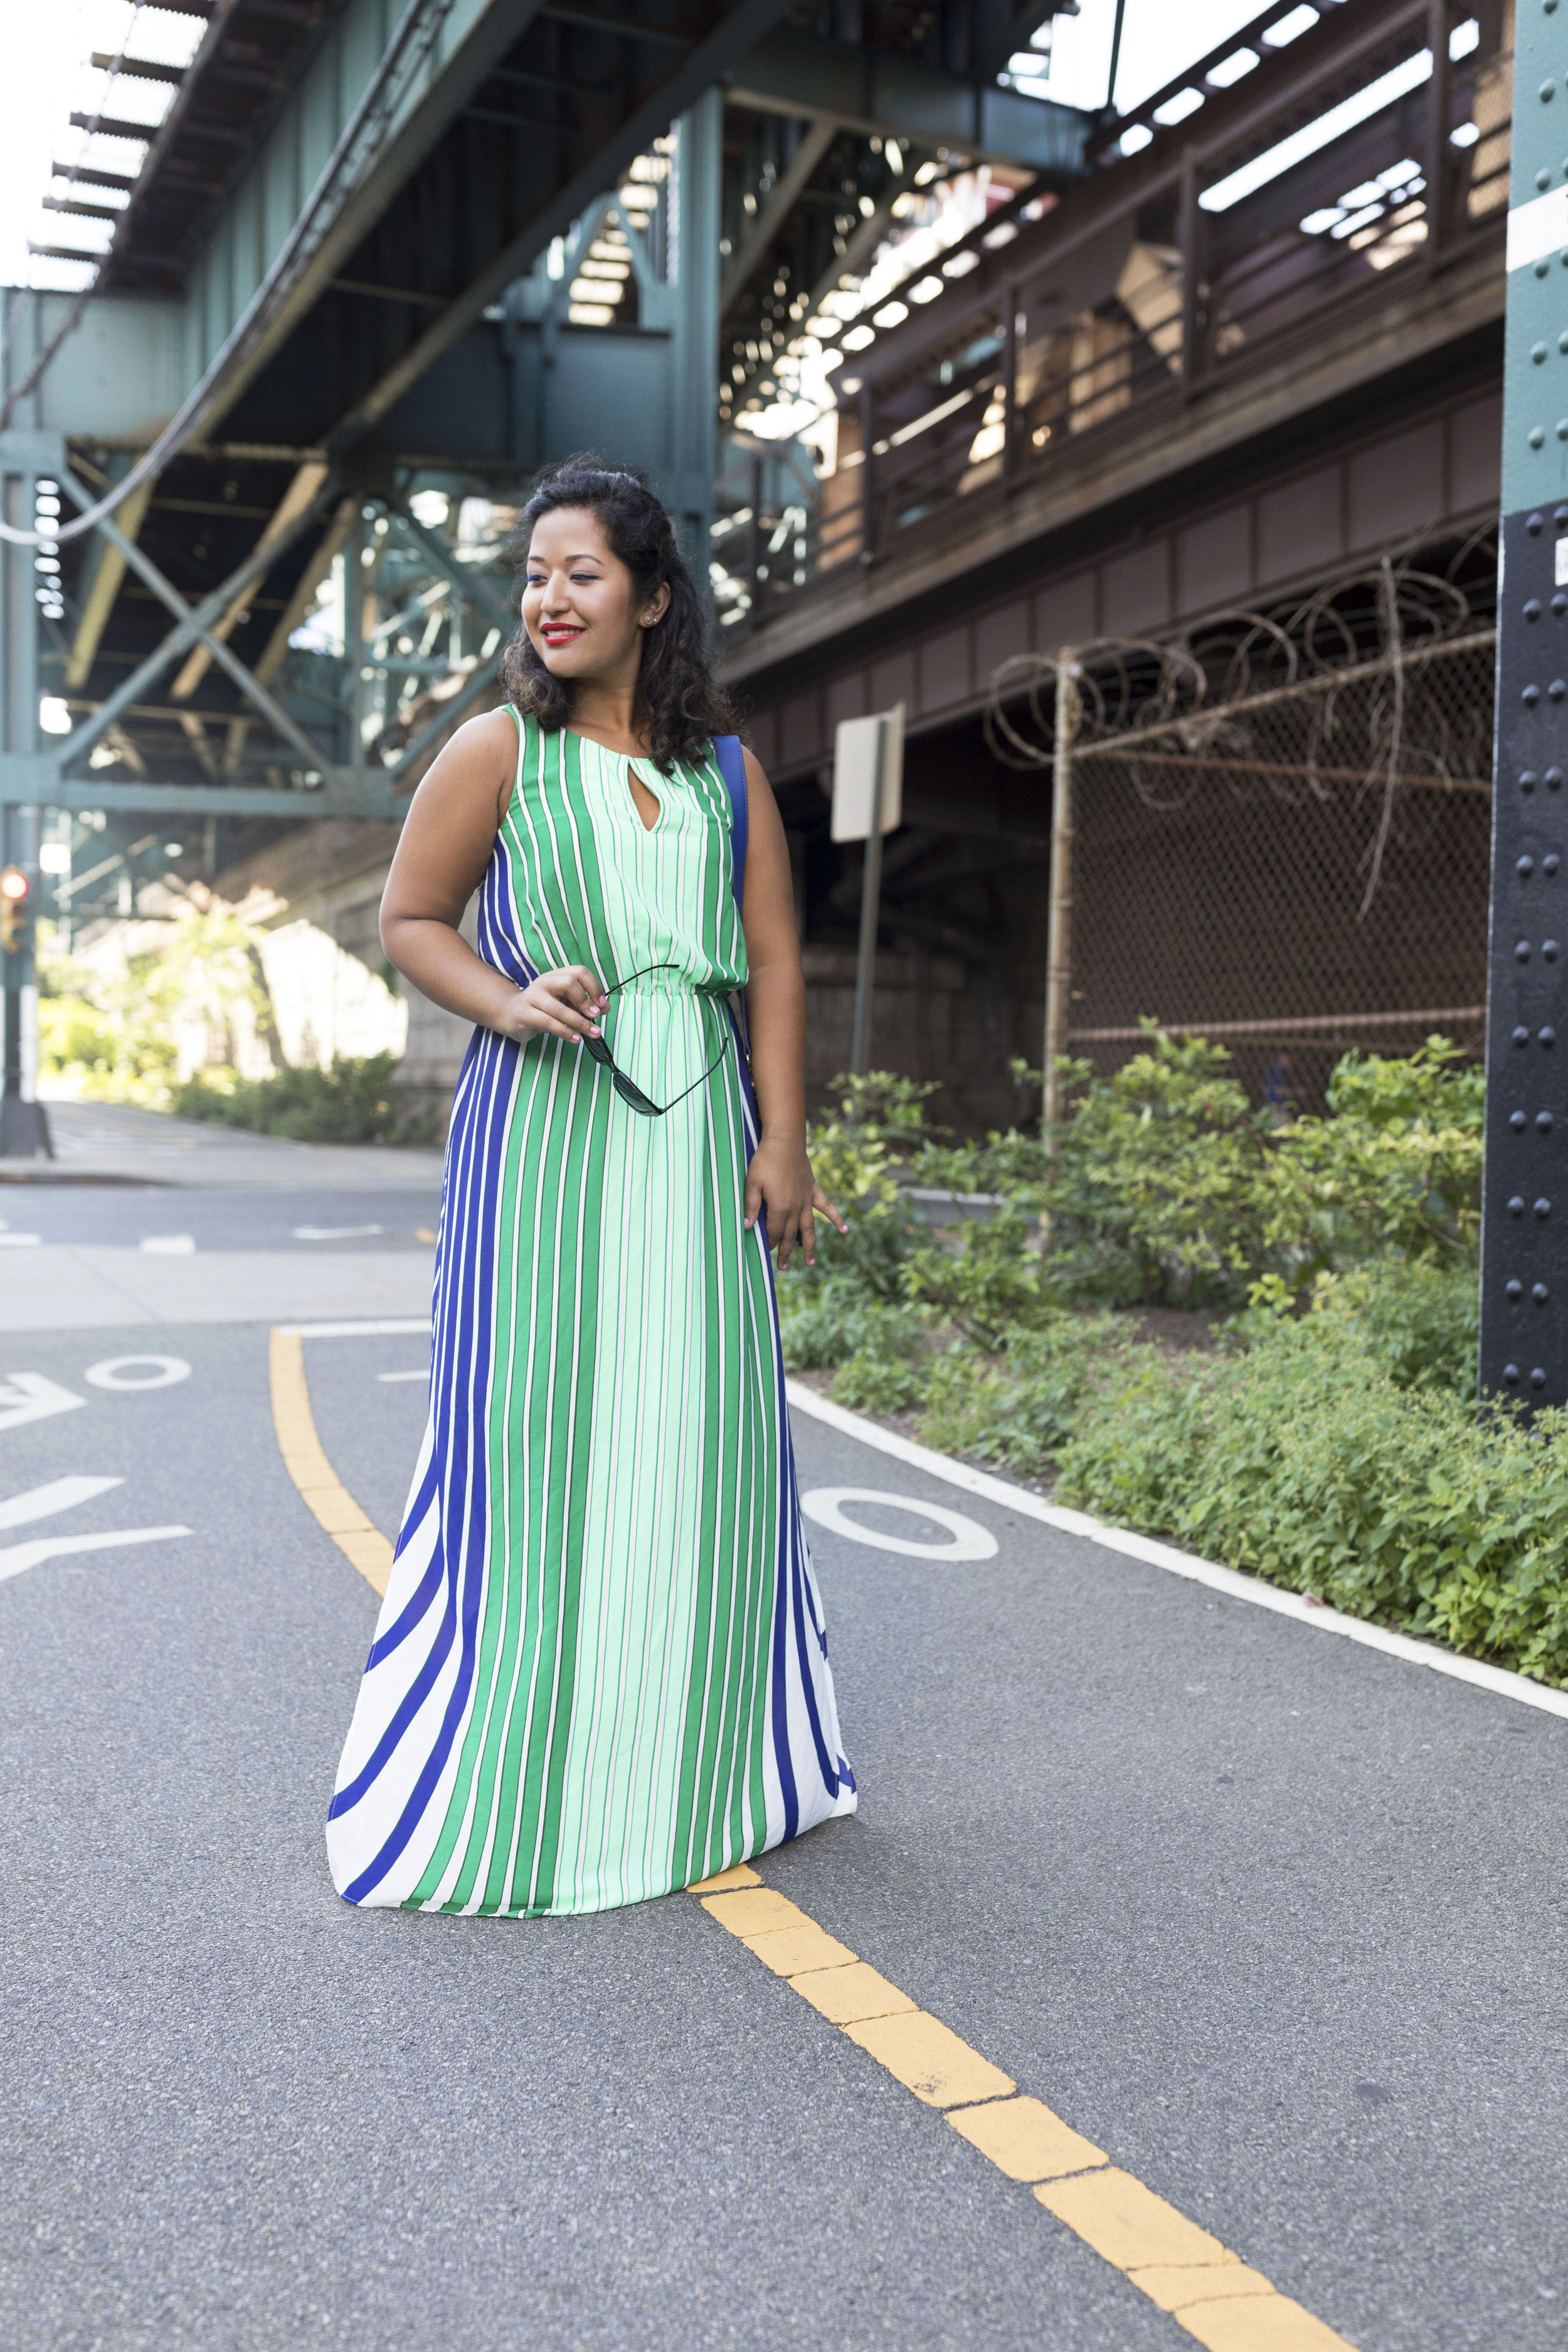 Krity S x Adrianna Papell x Stripped Maxi2.jpg